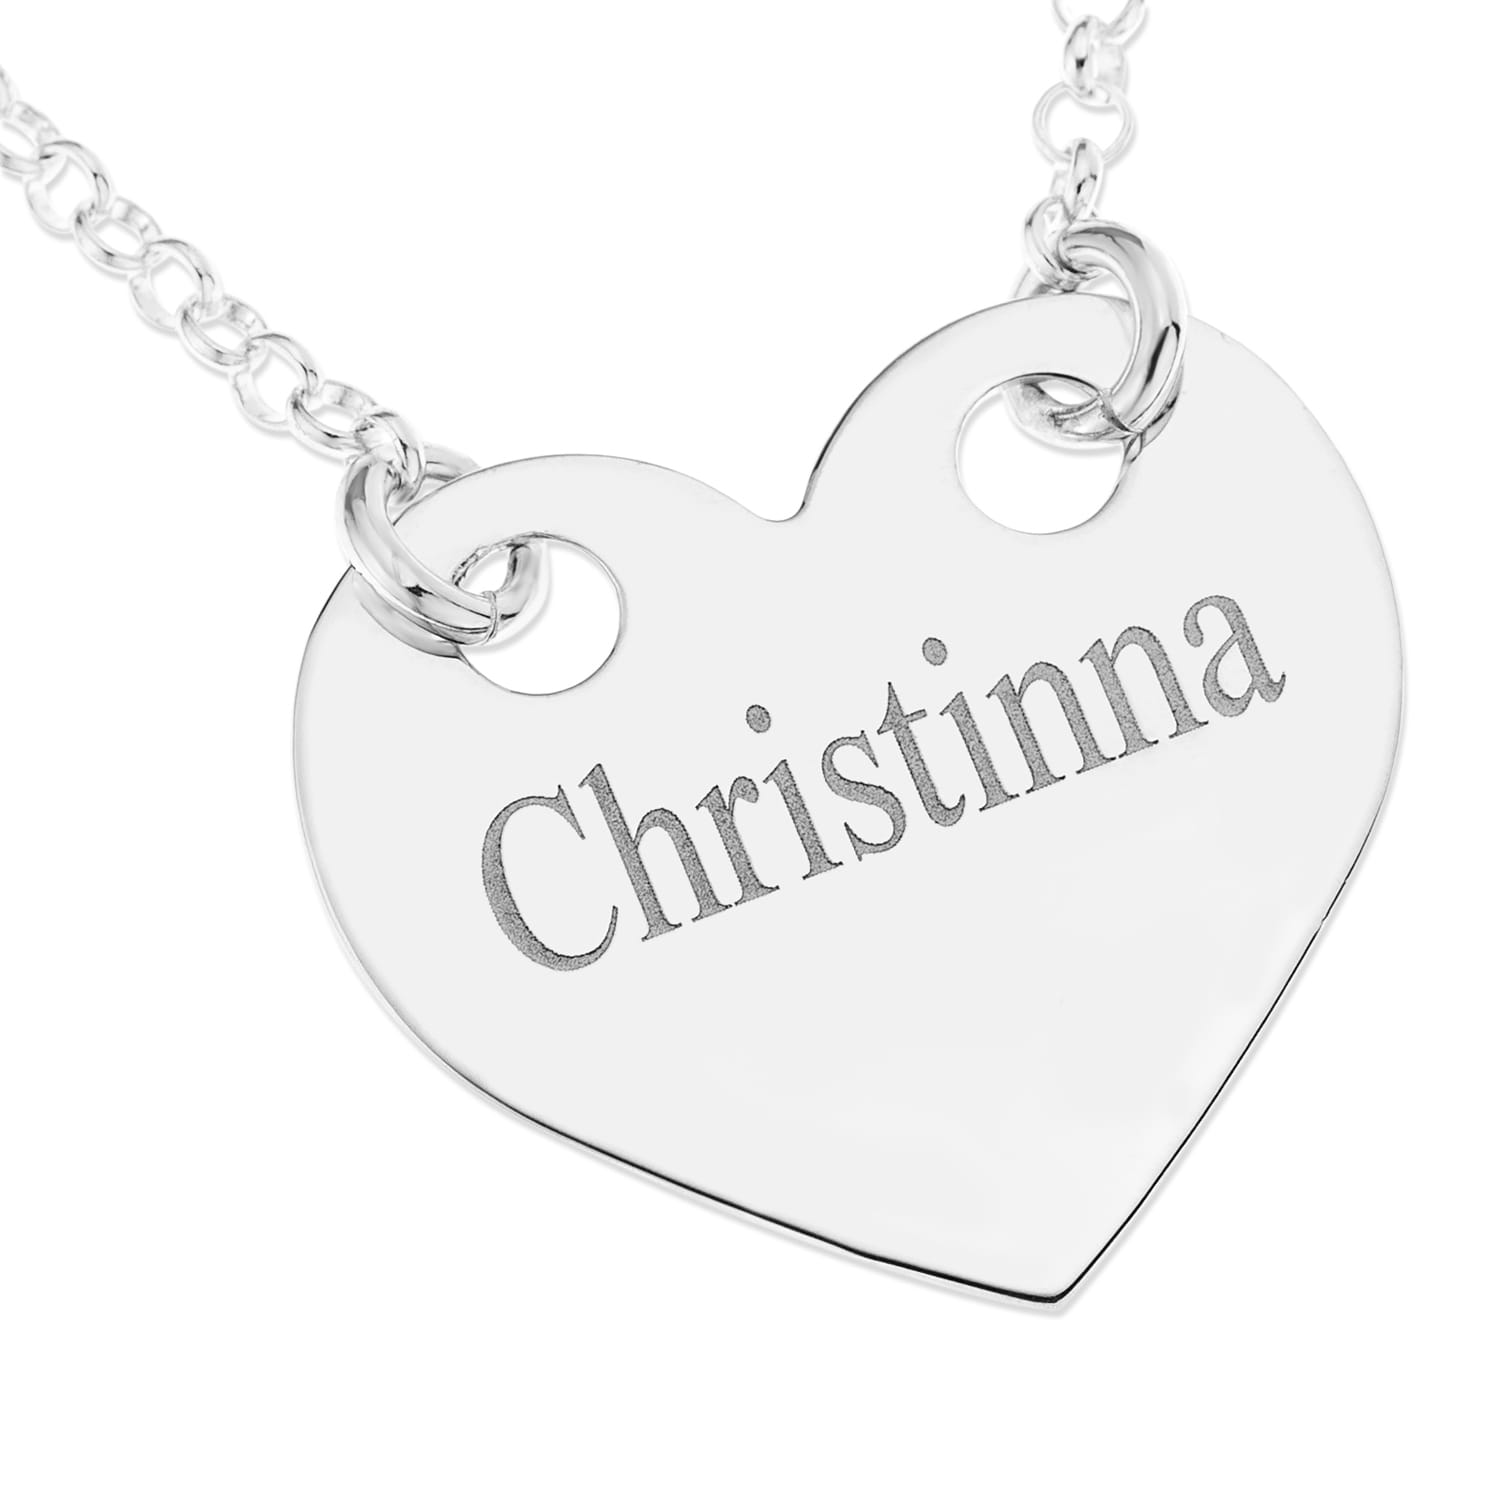 Personalised Gifts Sterling Silver Heart Pendant with Names Engraved